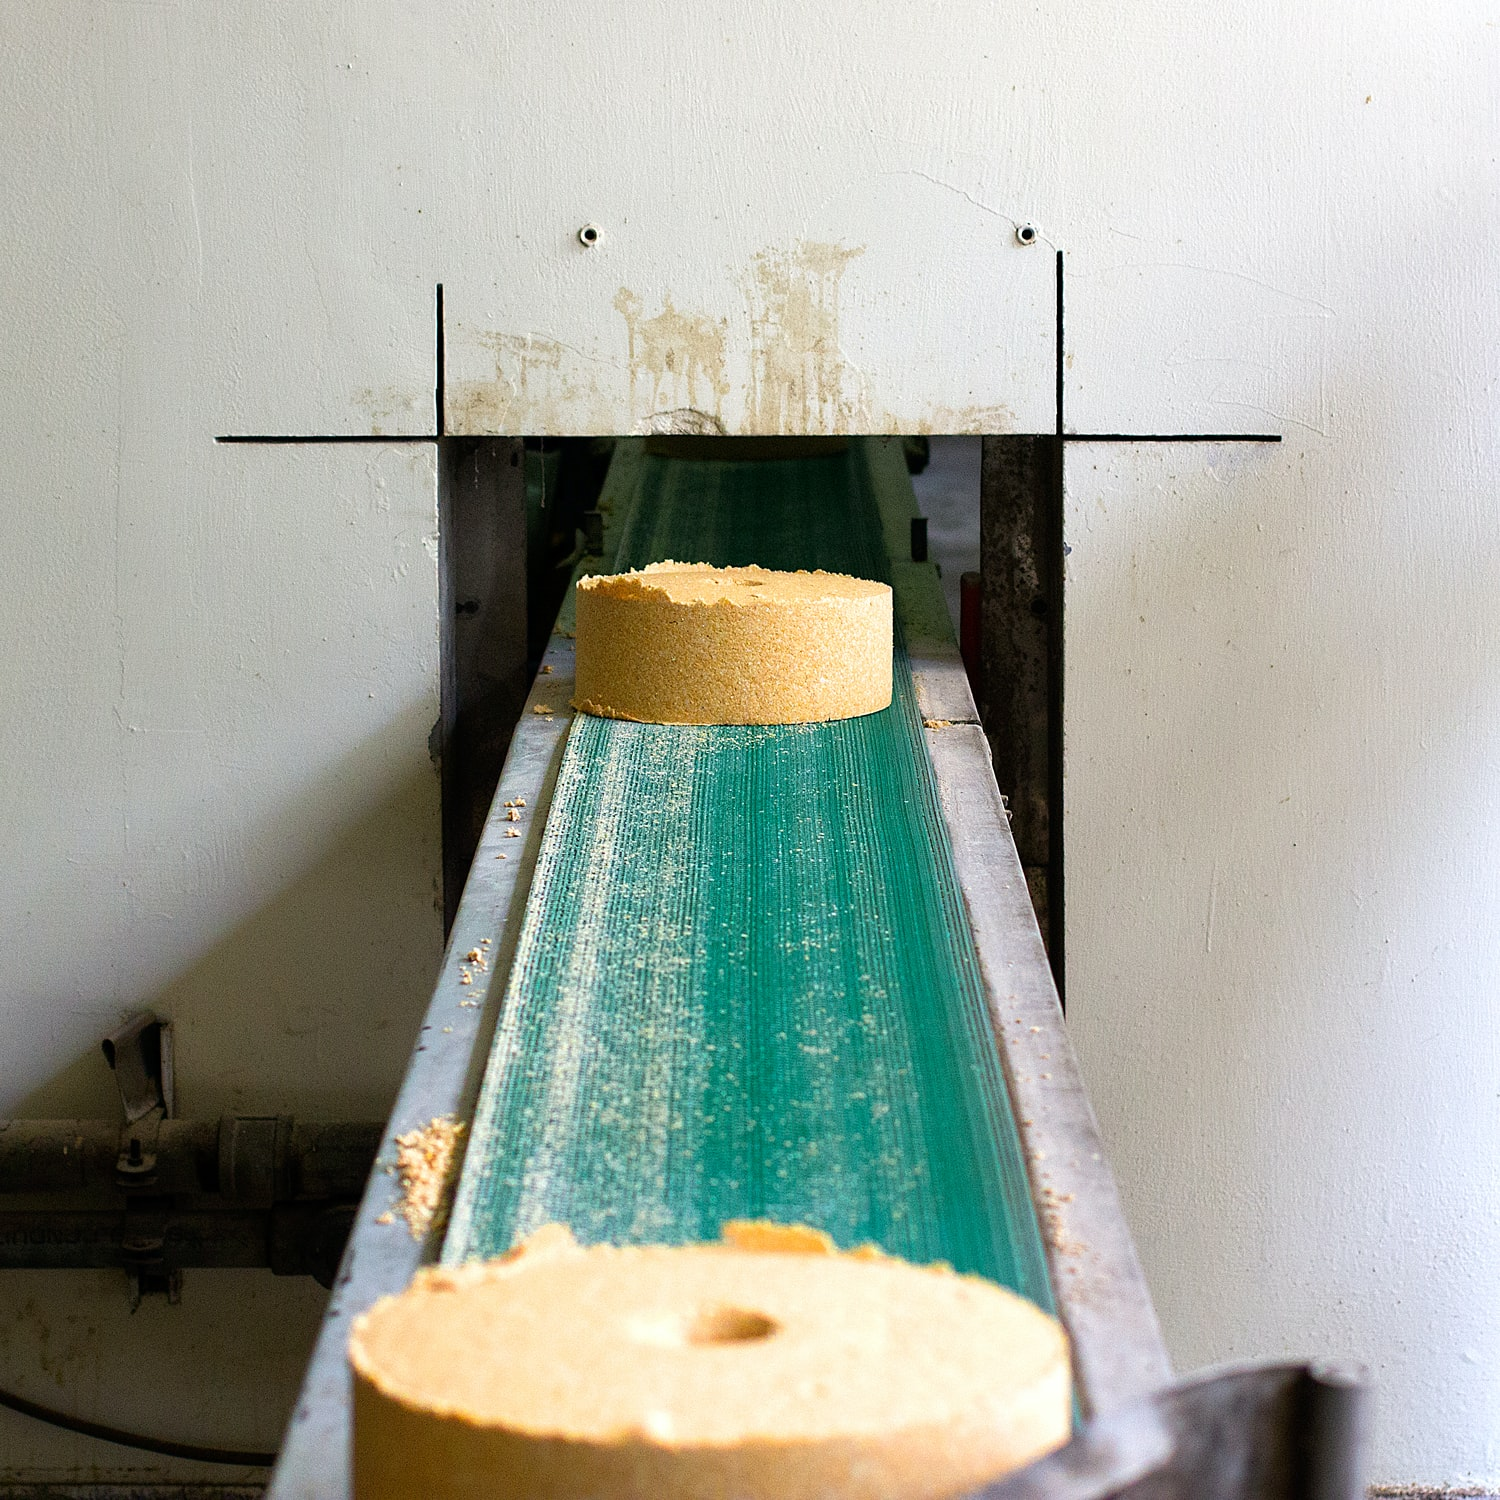 A yellow circular wheel on a green conveyer belt exiting a square hole in the white wall